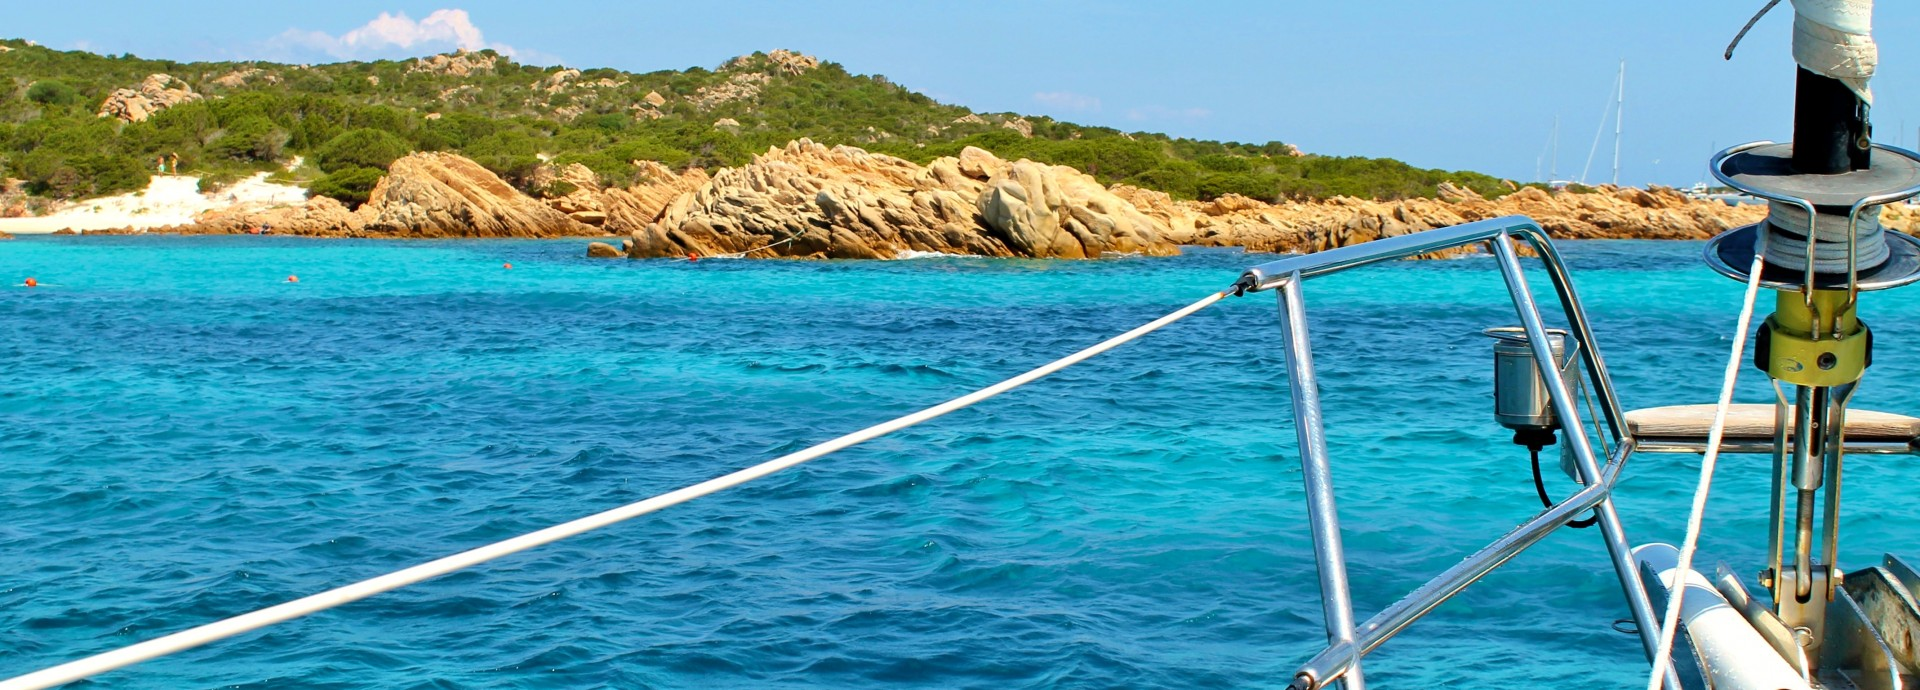 Anchored near Budelli Island Sardinia Italy